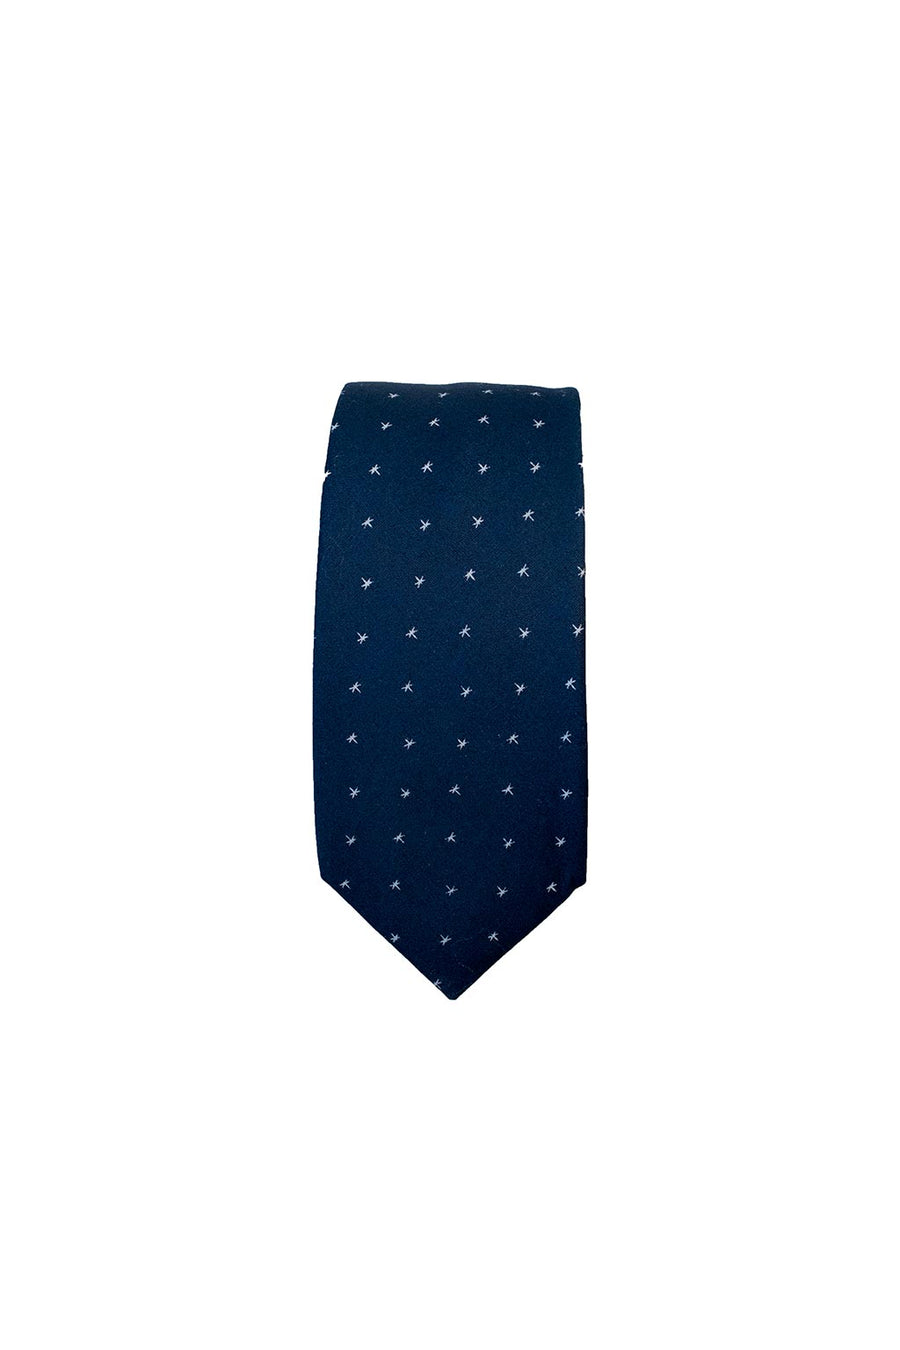 HEW Clothing Tie in Black